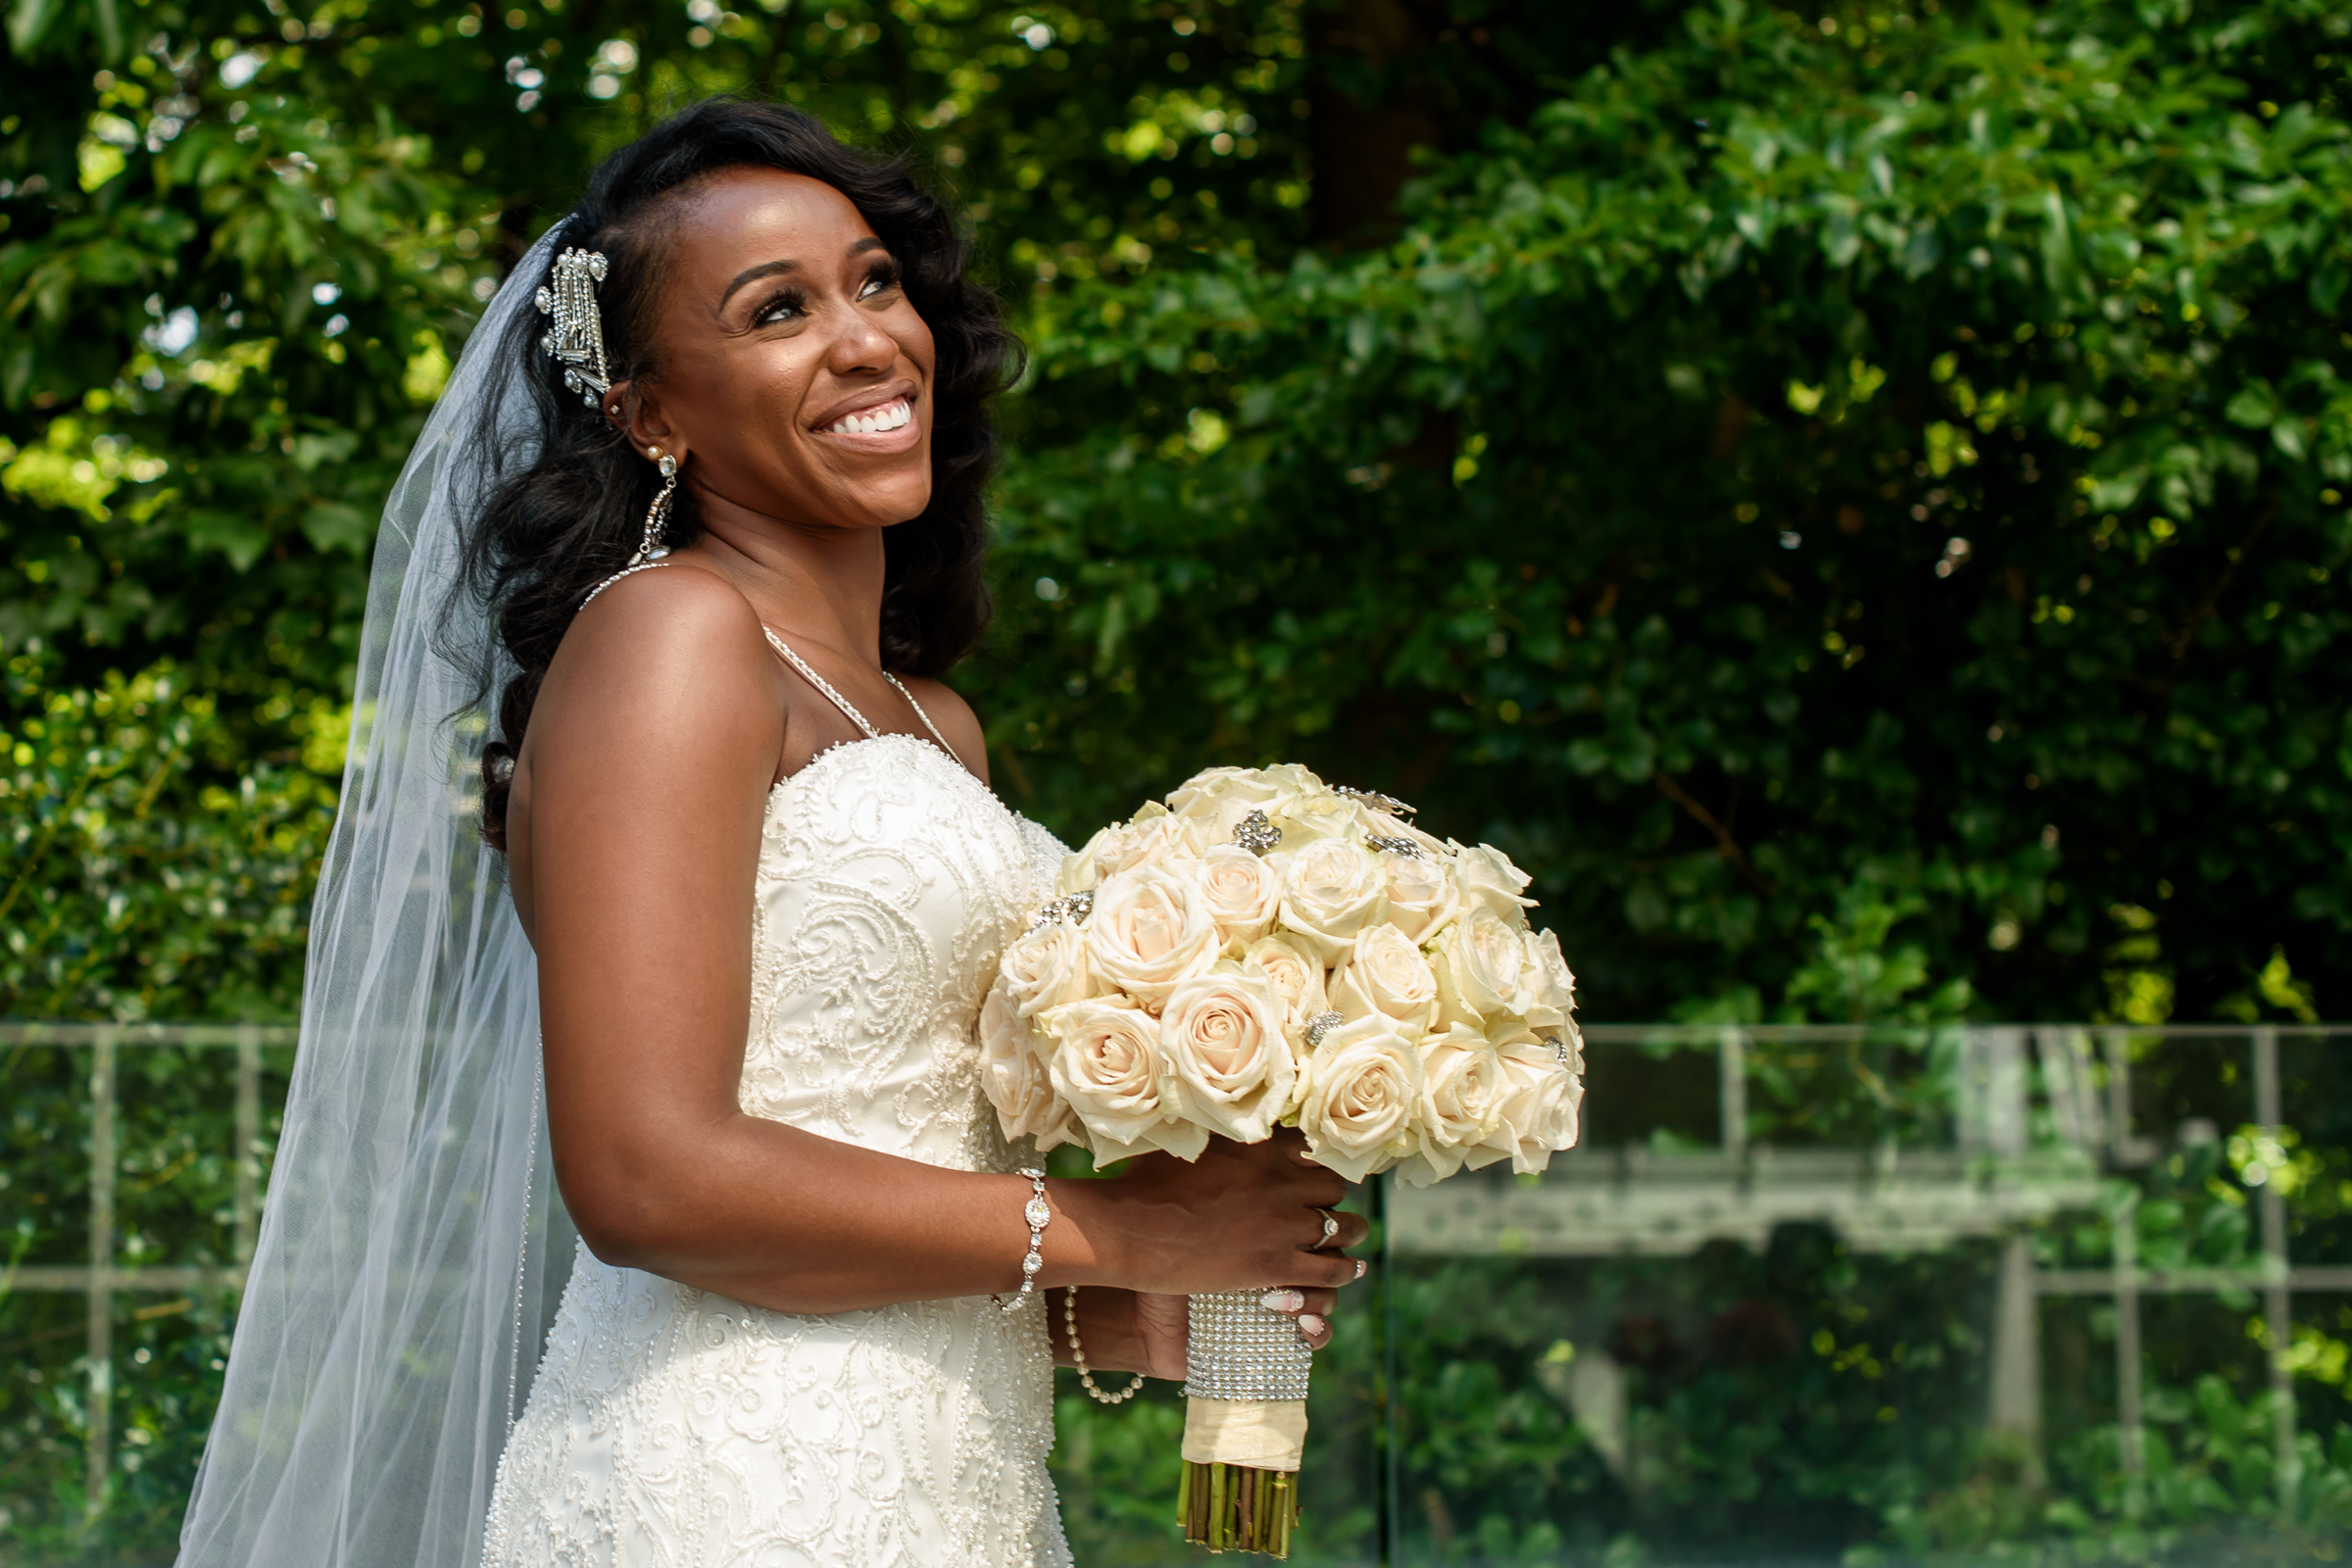 Smiling bride with bouquet of white roses - photo by Ashleigh Bing Photography